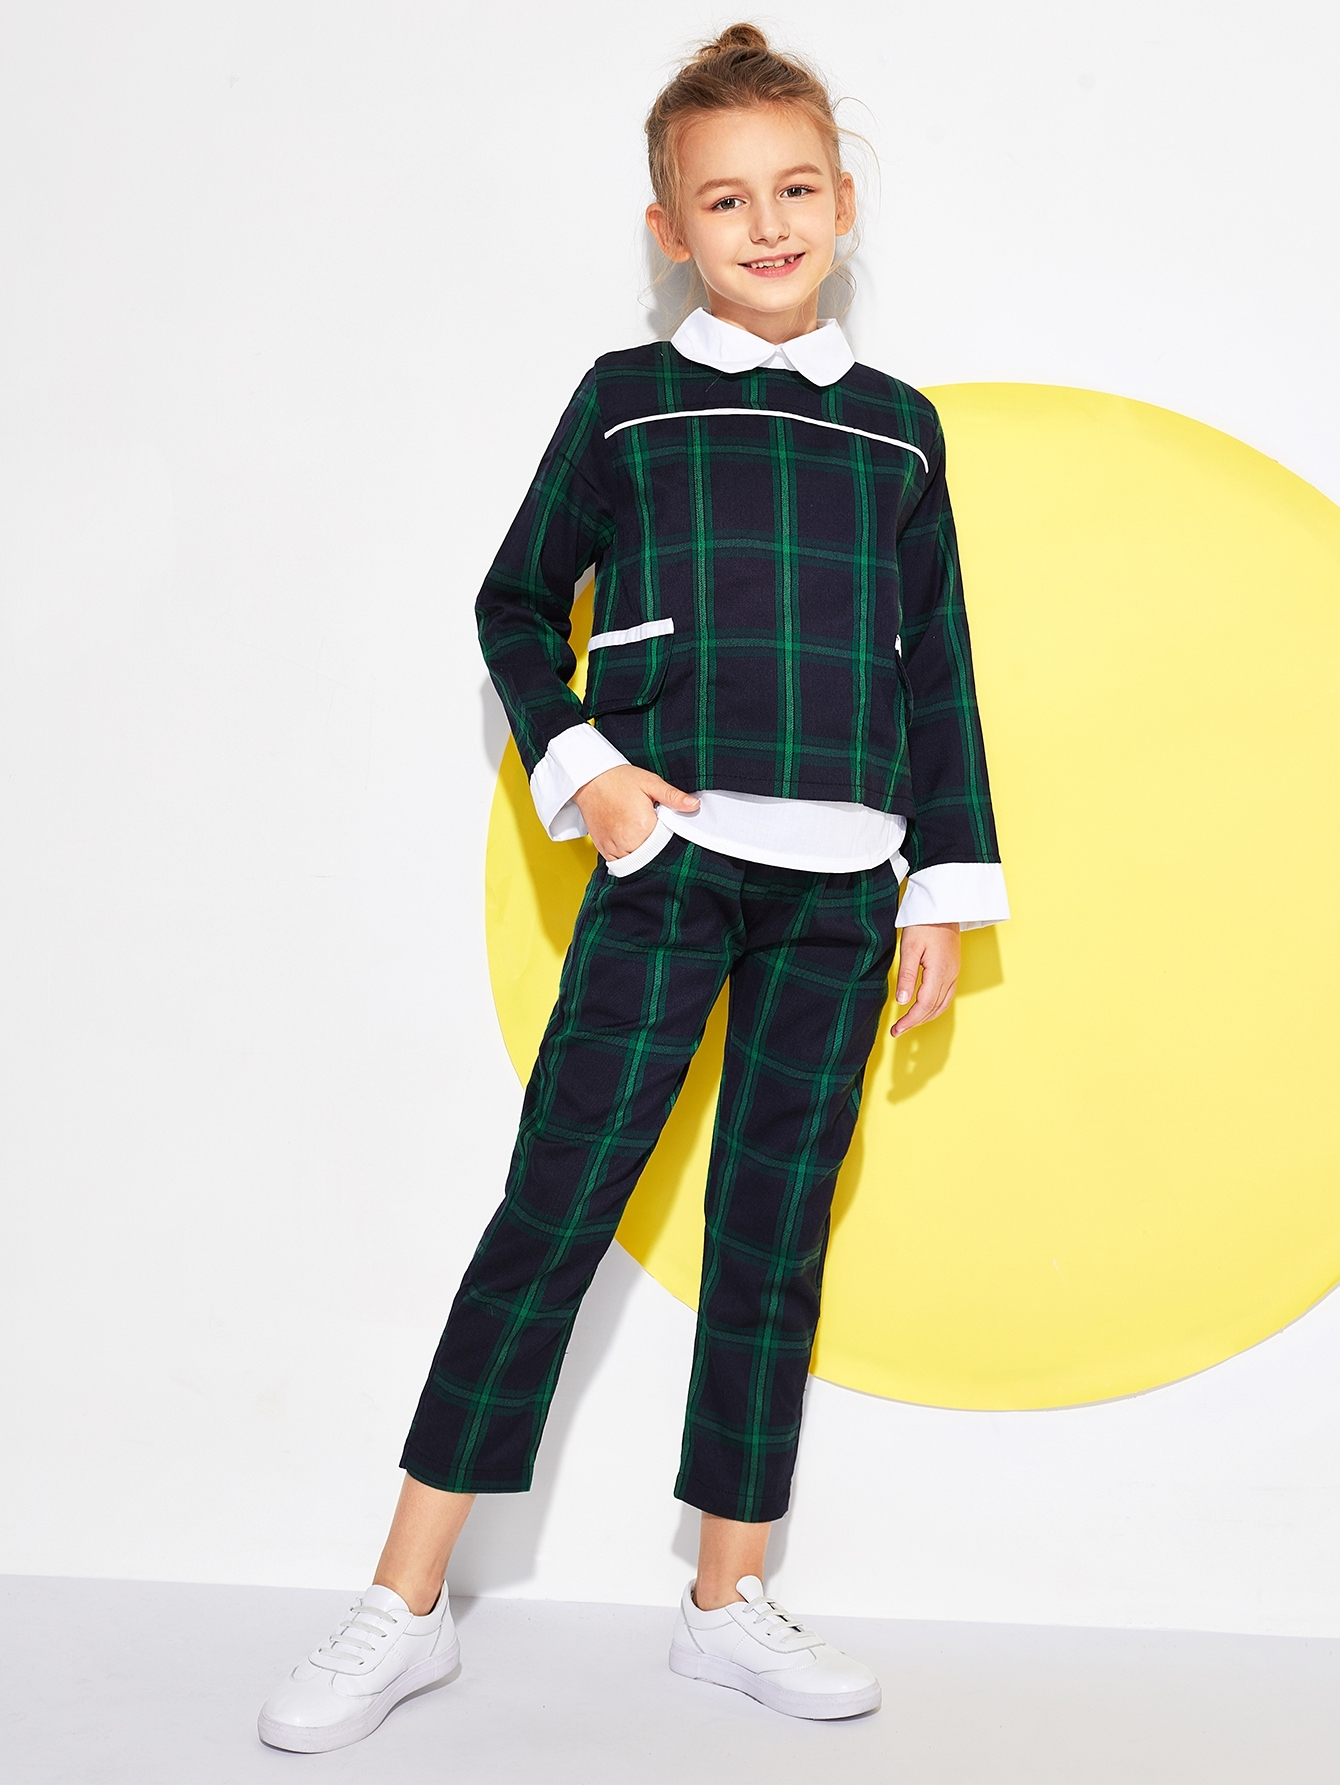 Boys Zip Back Plaid Top With Pants Boys Zip Back Plaid Top With Pants